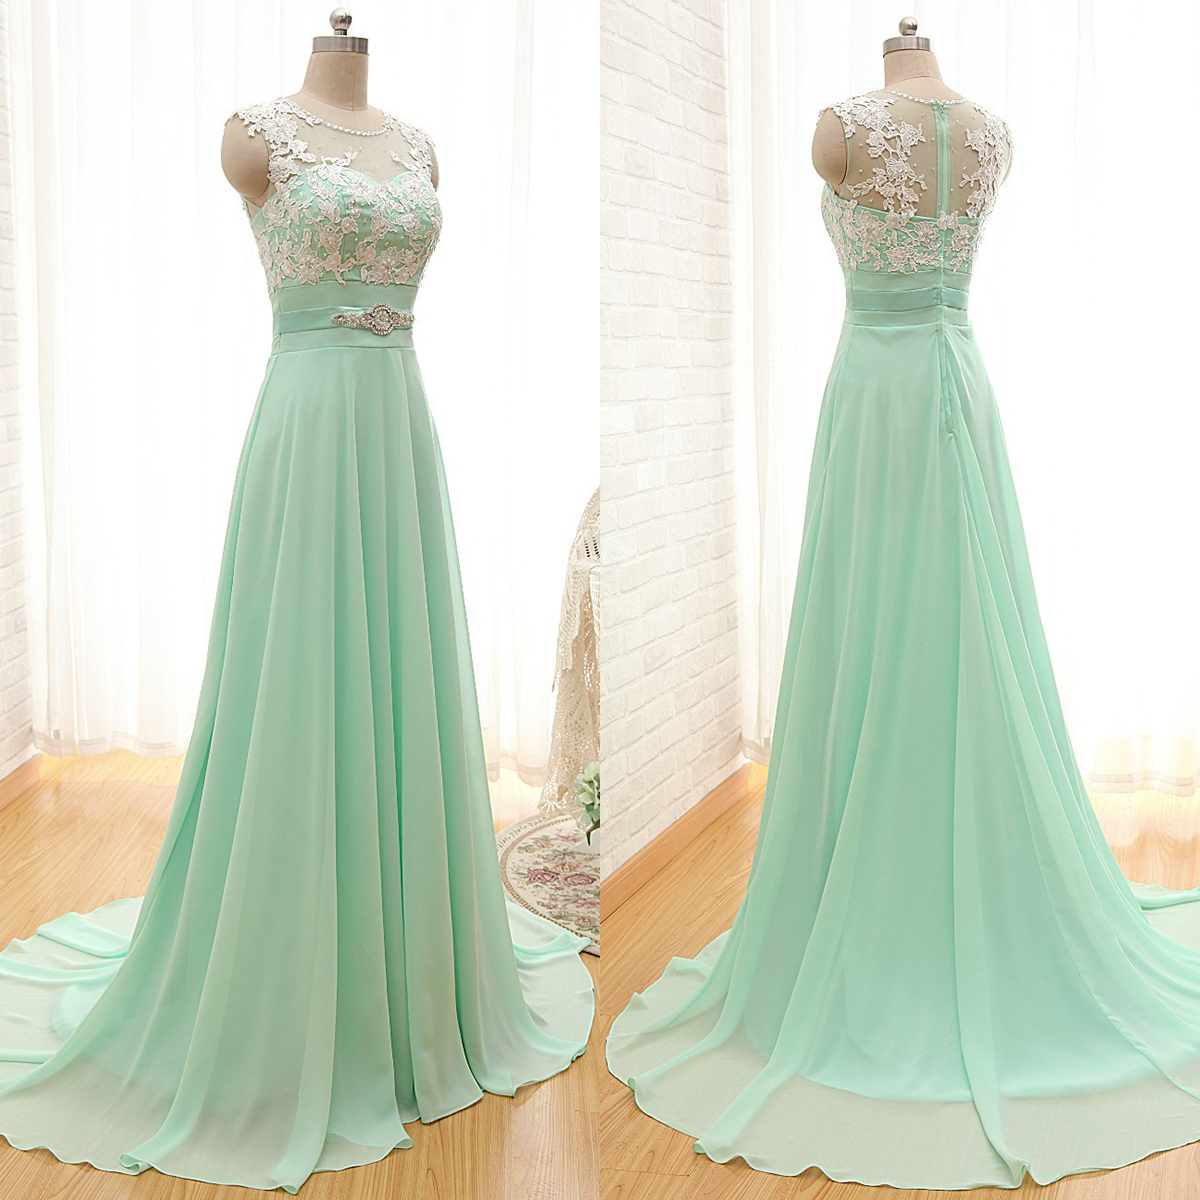 Scoop neck bridesmaid dresses with lace appliques elegant chiffon scoop neck bridesmaid dresses with lace appliques elegant chiffon bridesmaid dresses light green bridesmaid ombrellifo Gallery